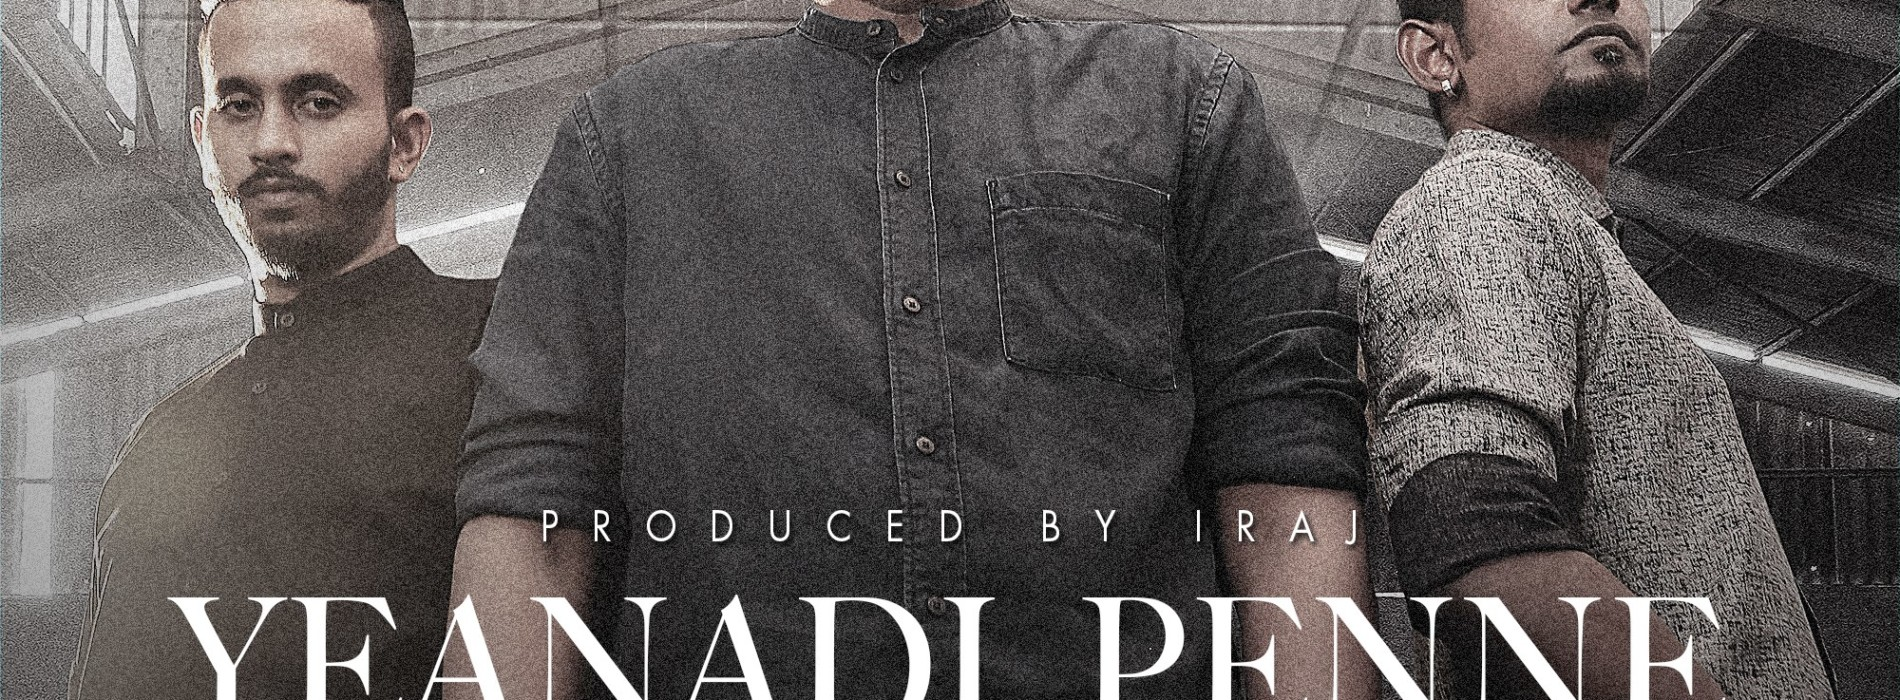 Iraj Ft Krish Manoj & ADK – 'Yeanadi Penne'